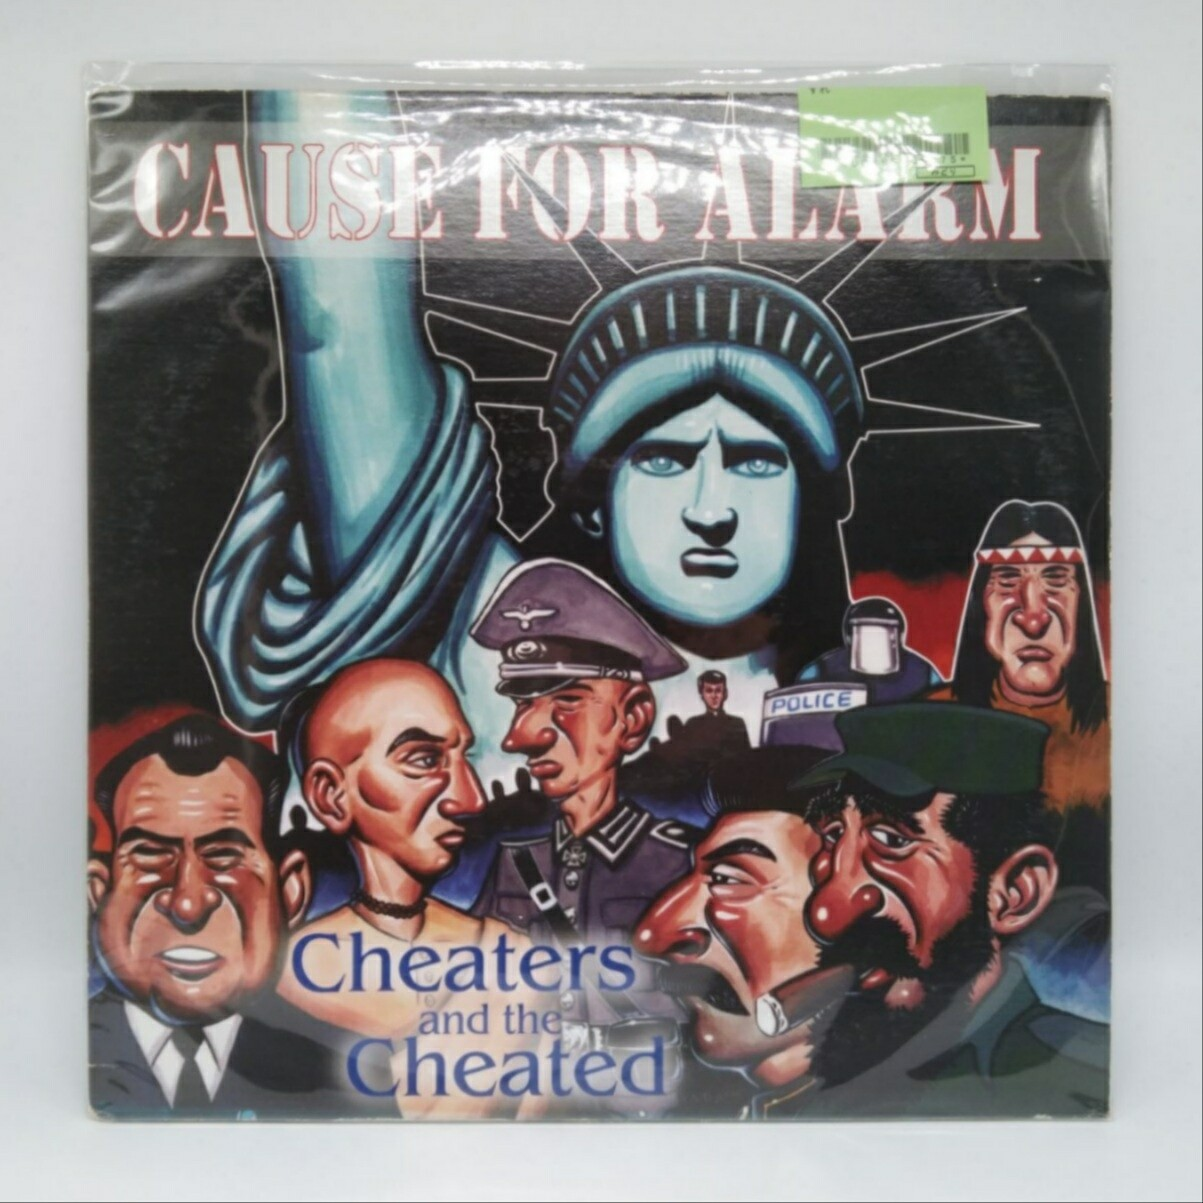 [USED] CAUSE FOR ALARM -CHEARTERS AND THE CHEATED- LP